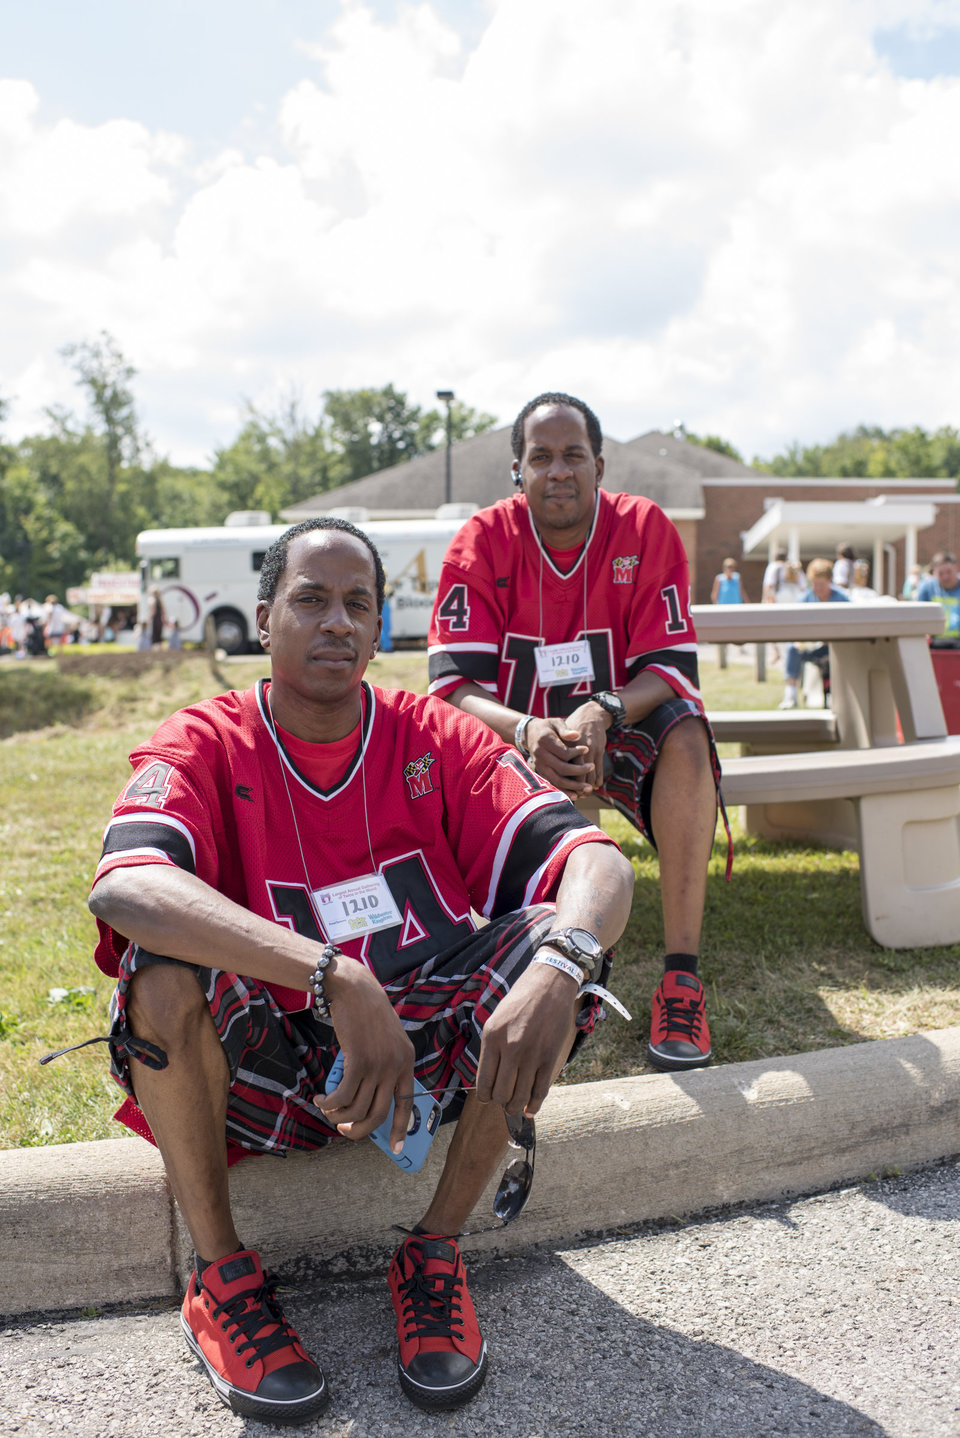 James and Charles Johnson, 33 are actually triplets but their sister, Denise, could not make it to the Twins Days Festival this year. Photo by Dustin Franz